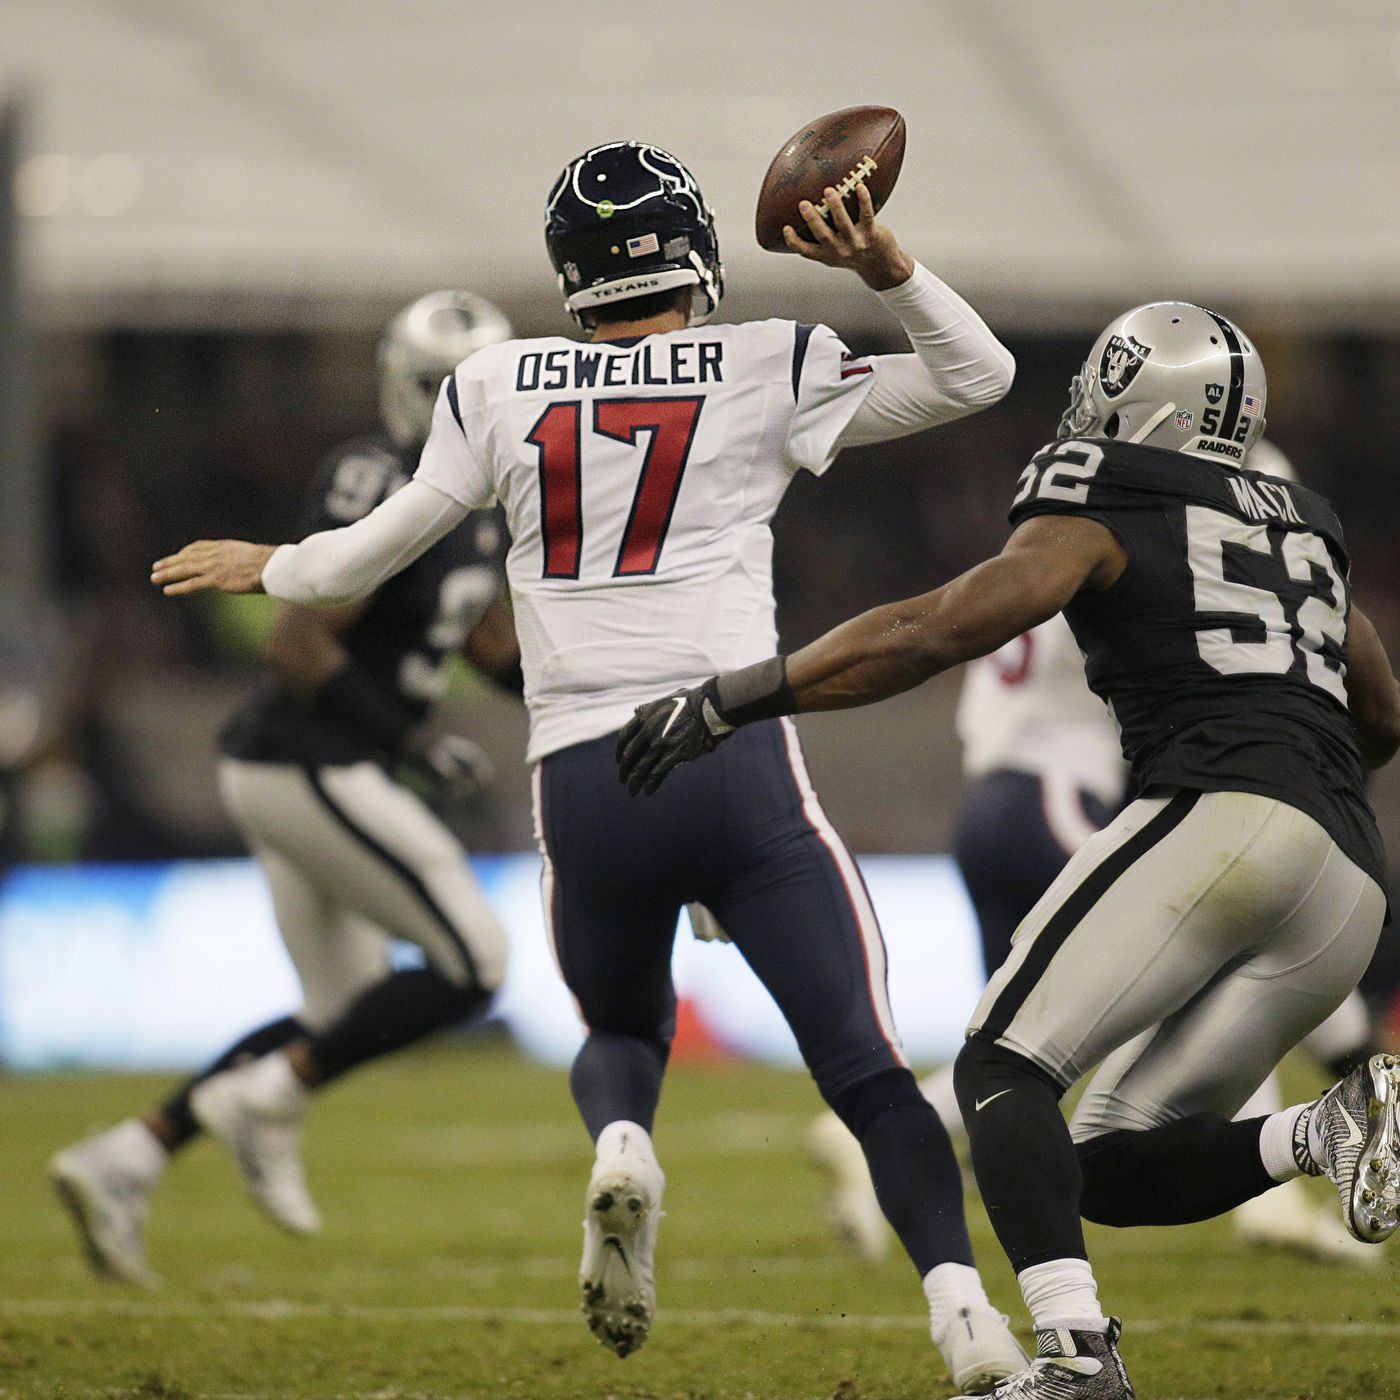 Texans Raiders 2016 Wild Card Playoffs Schedule Game Time Tv